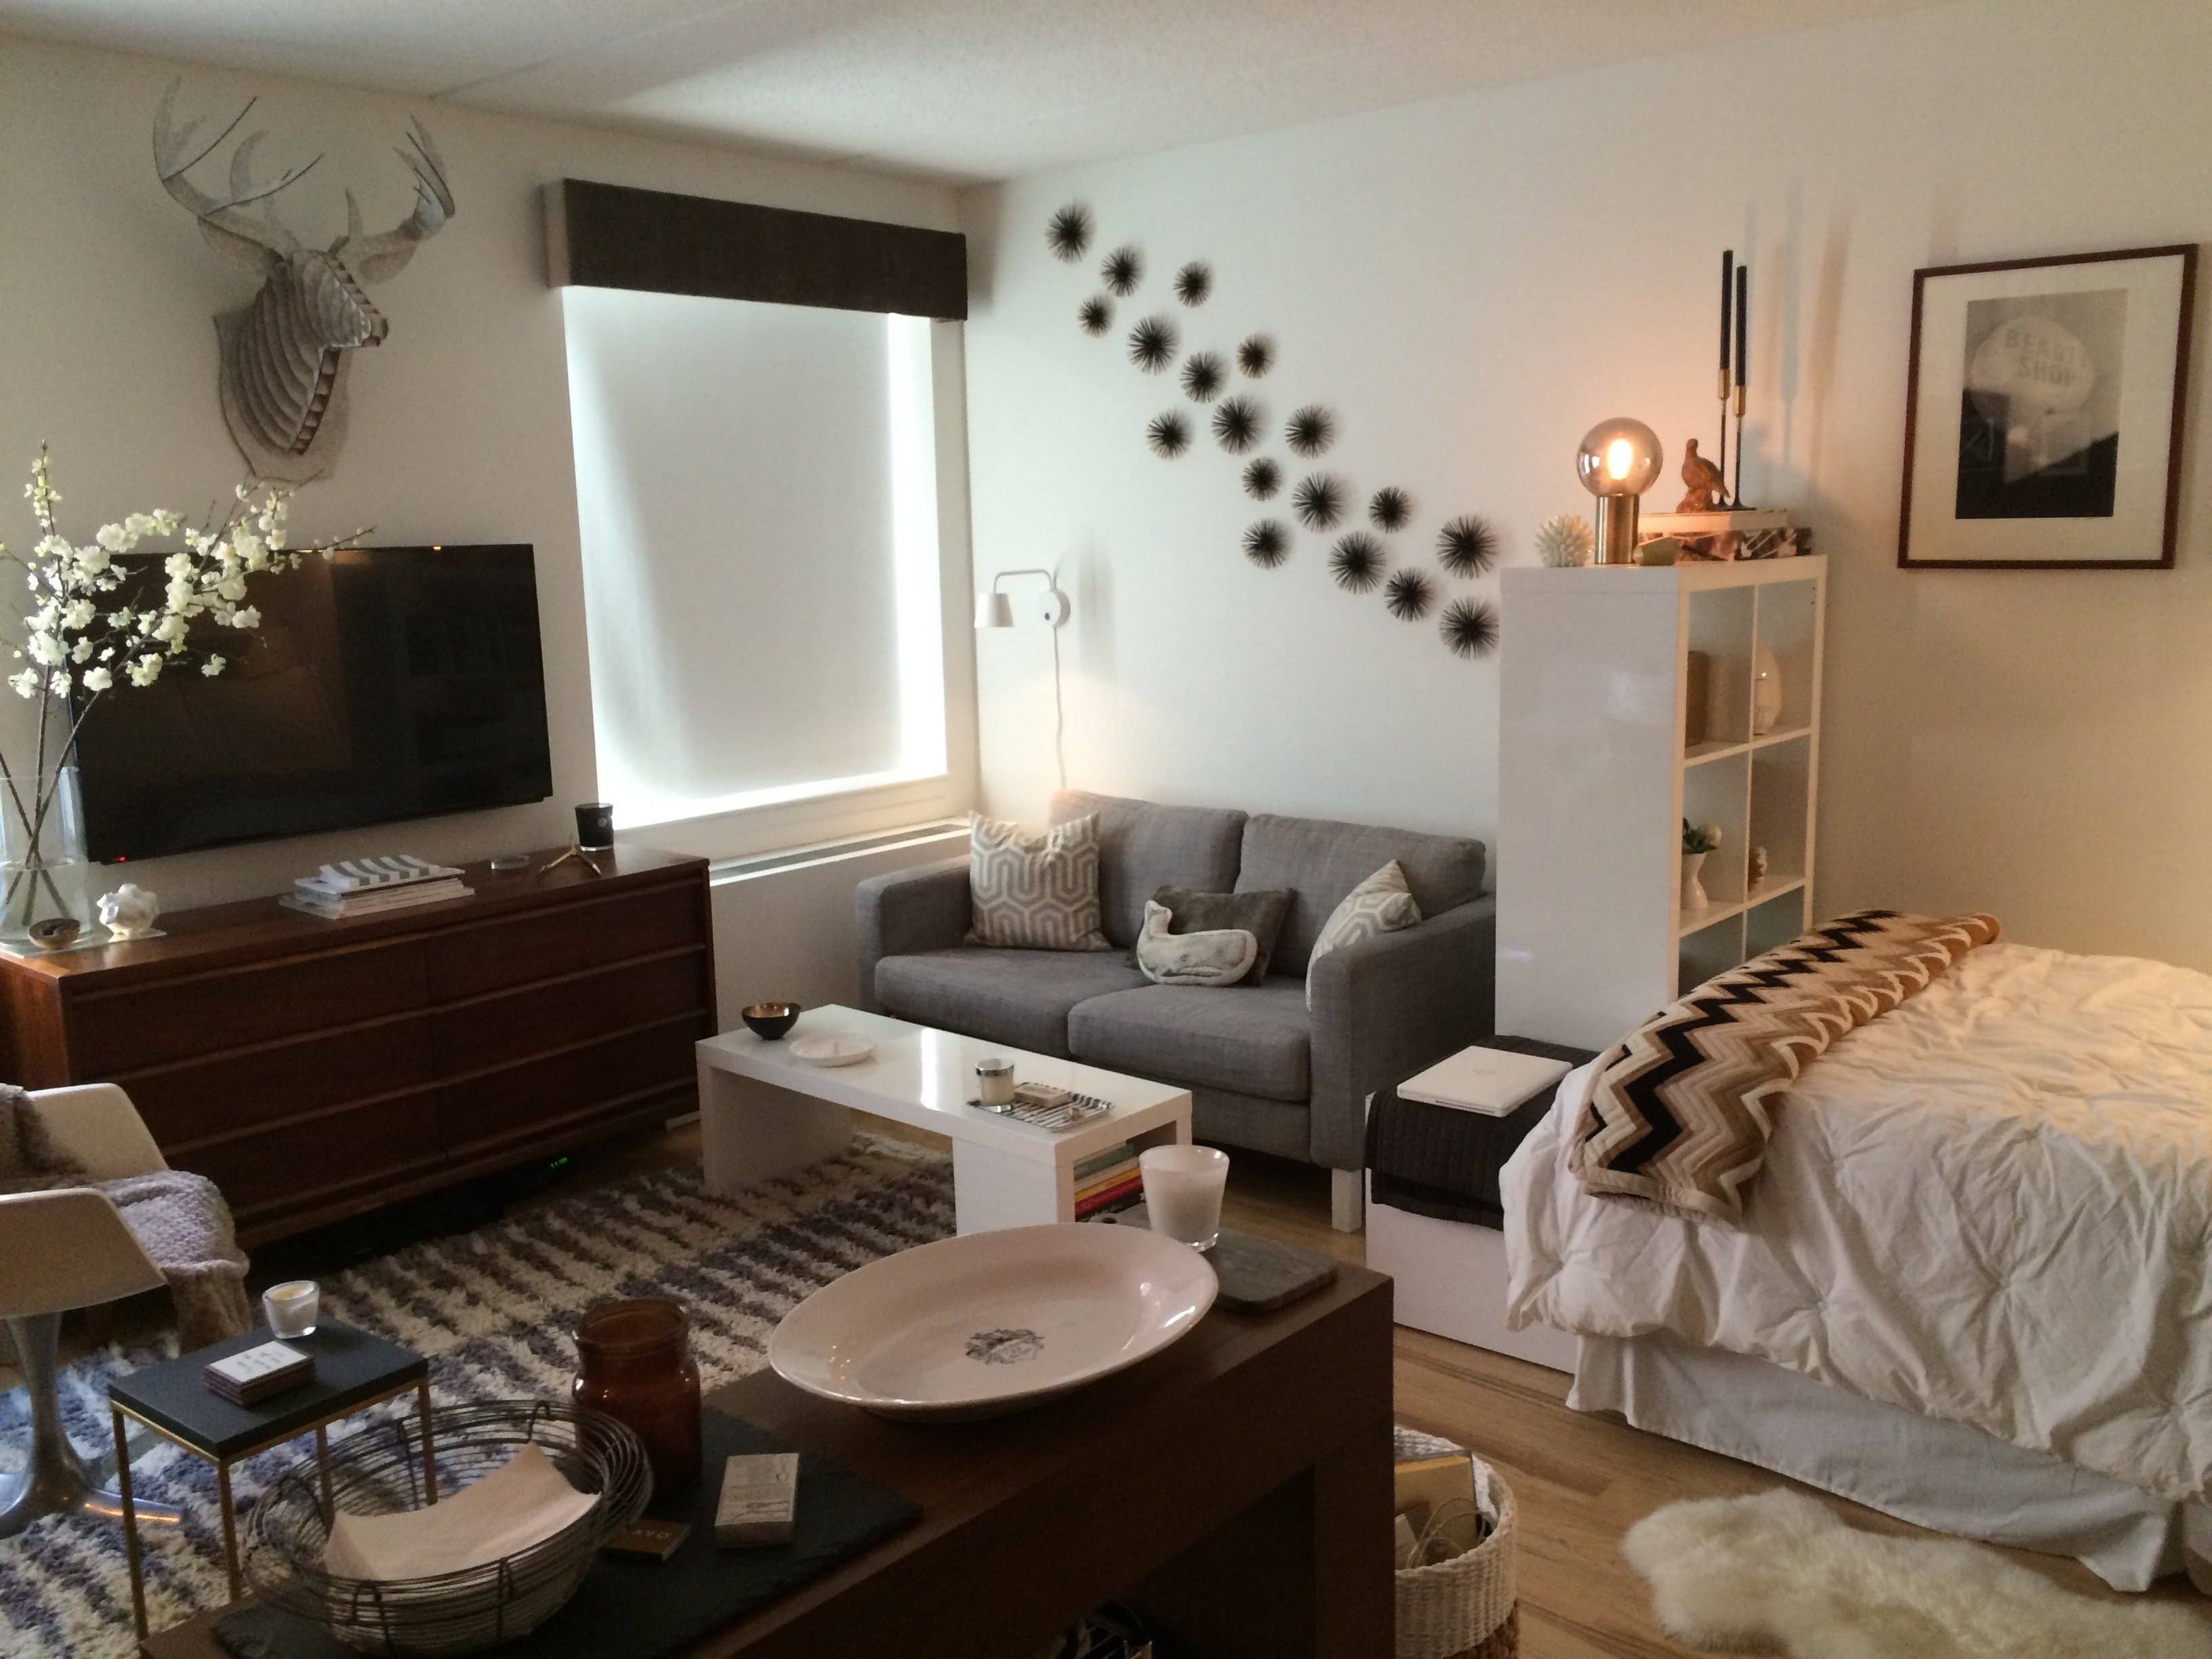 Decorating A Small Studio Apartment 5 Studio Apartment Layouts That Just Plain Work Studio